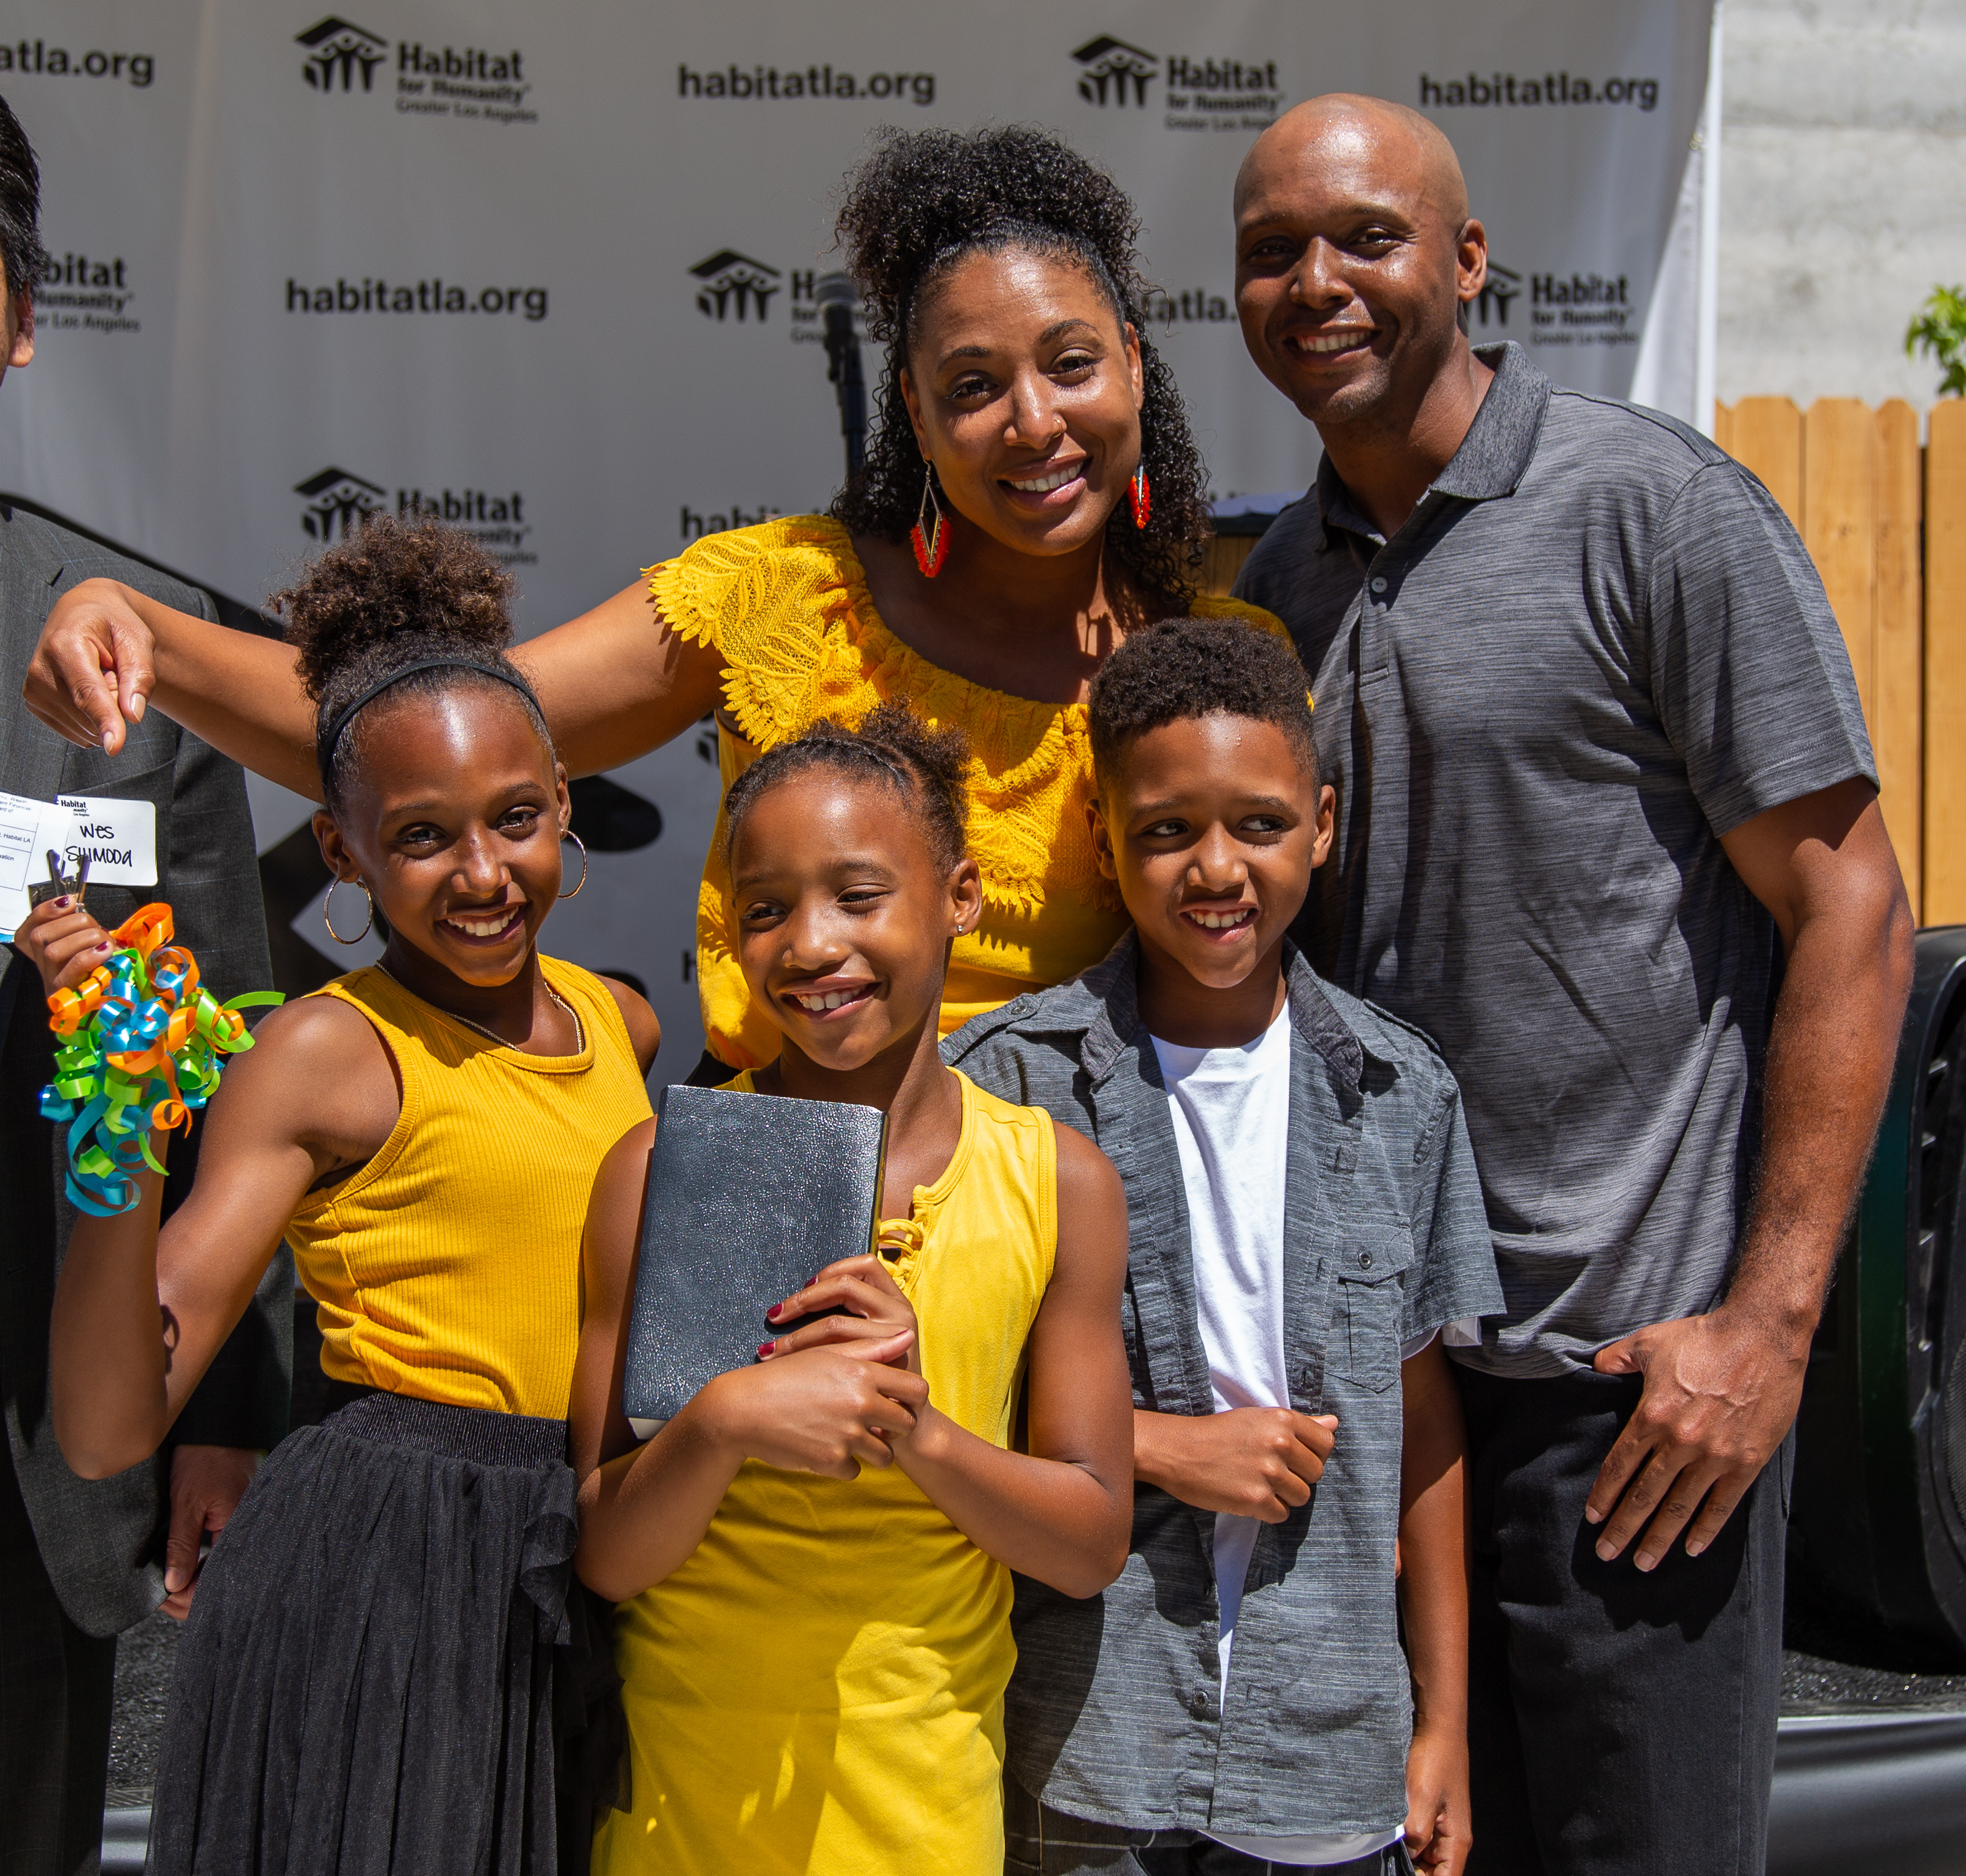 a family smiling for a group photo holding keys to their new home and a bible.